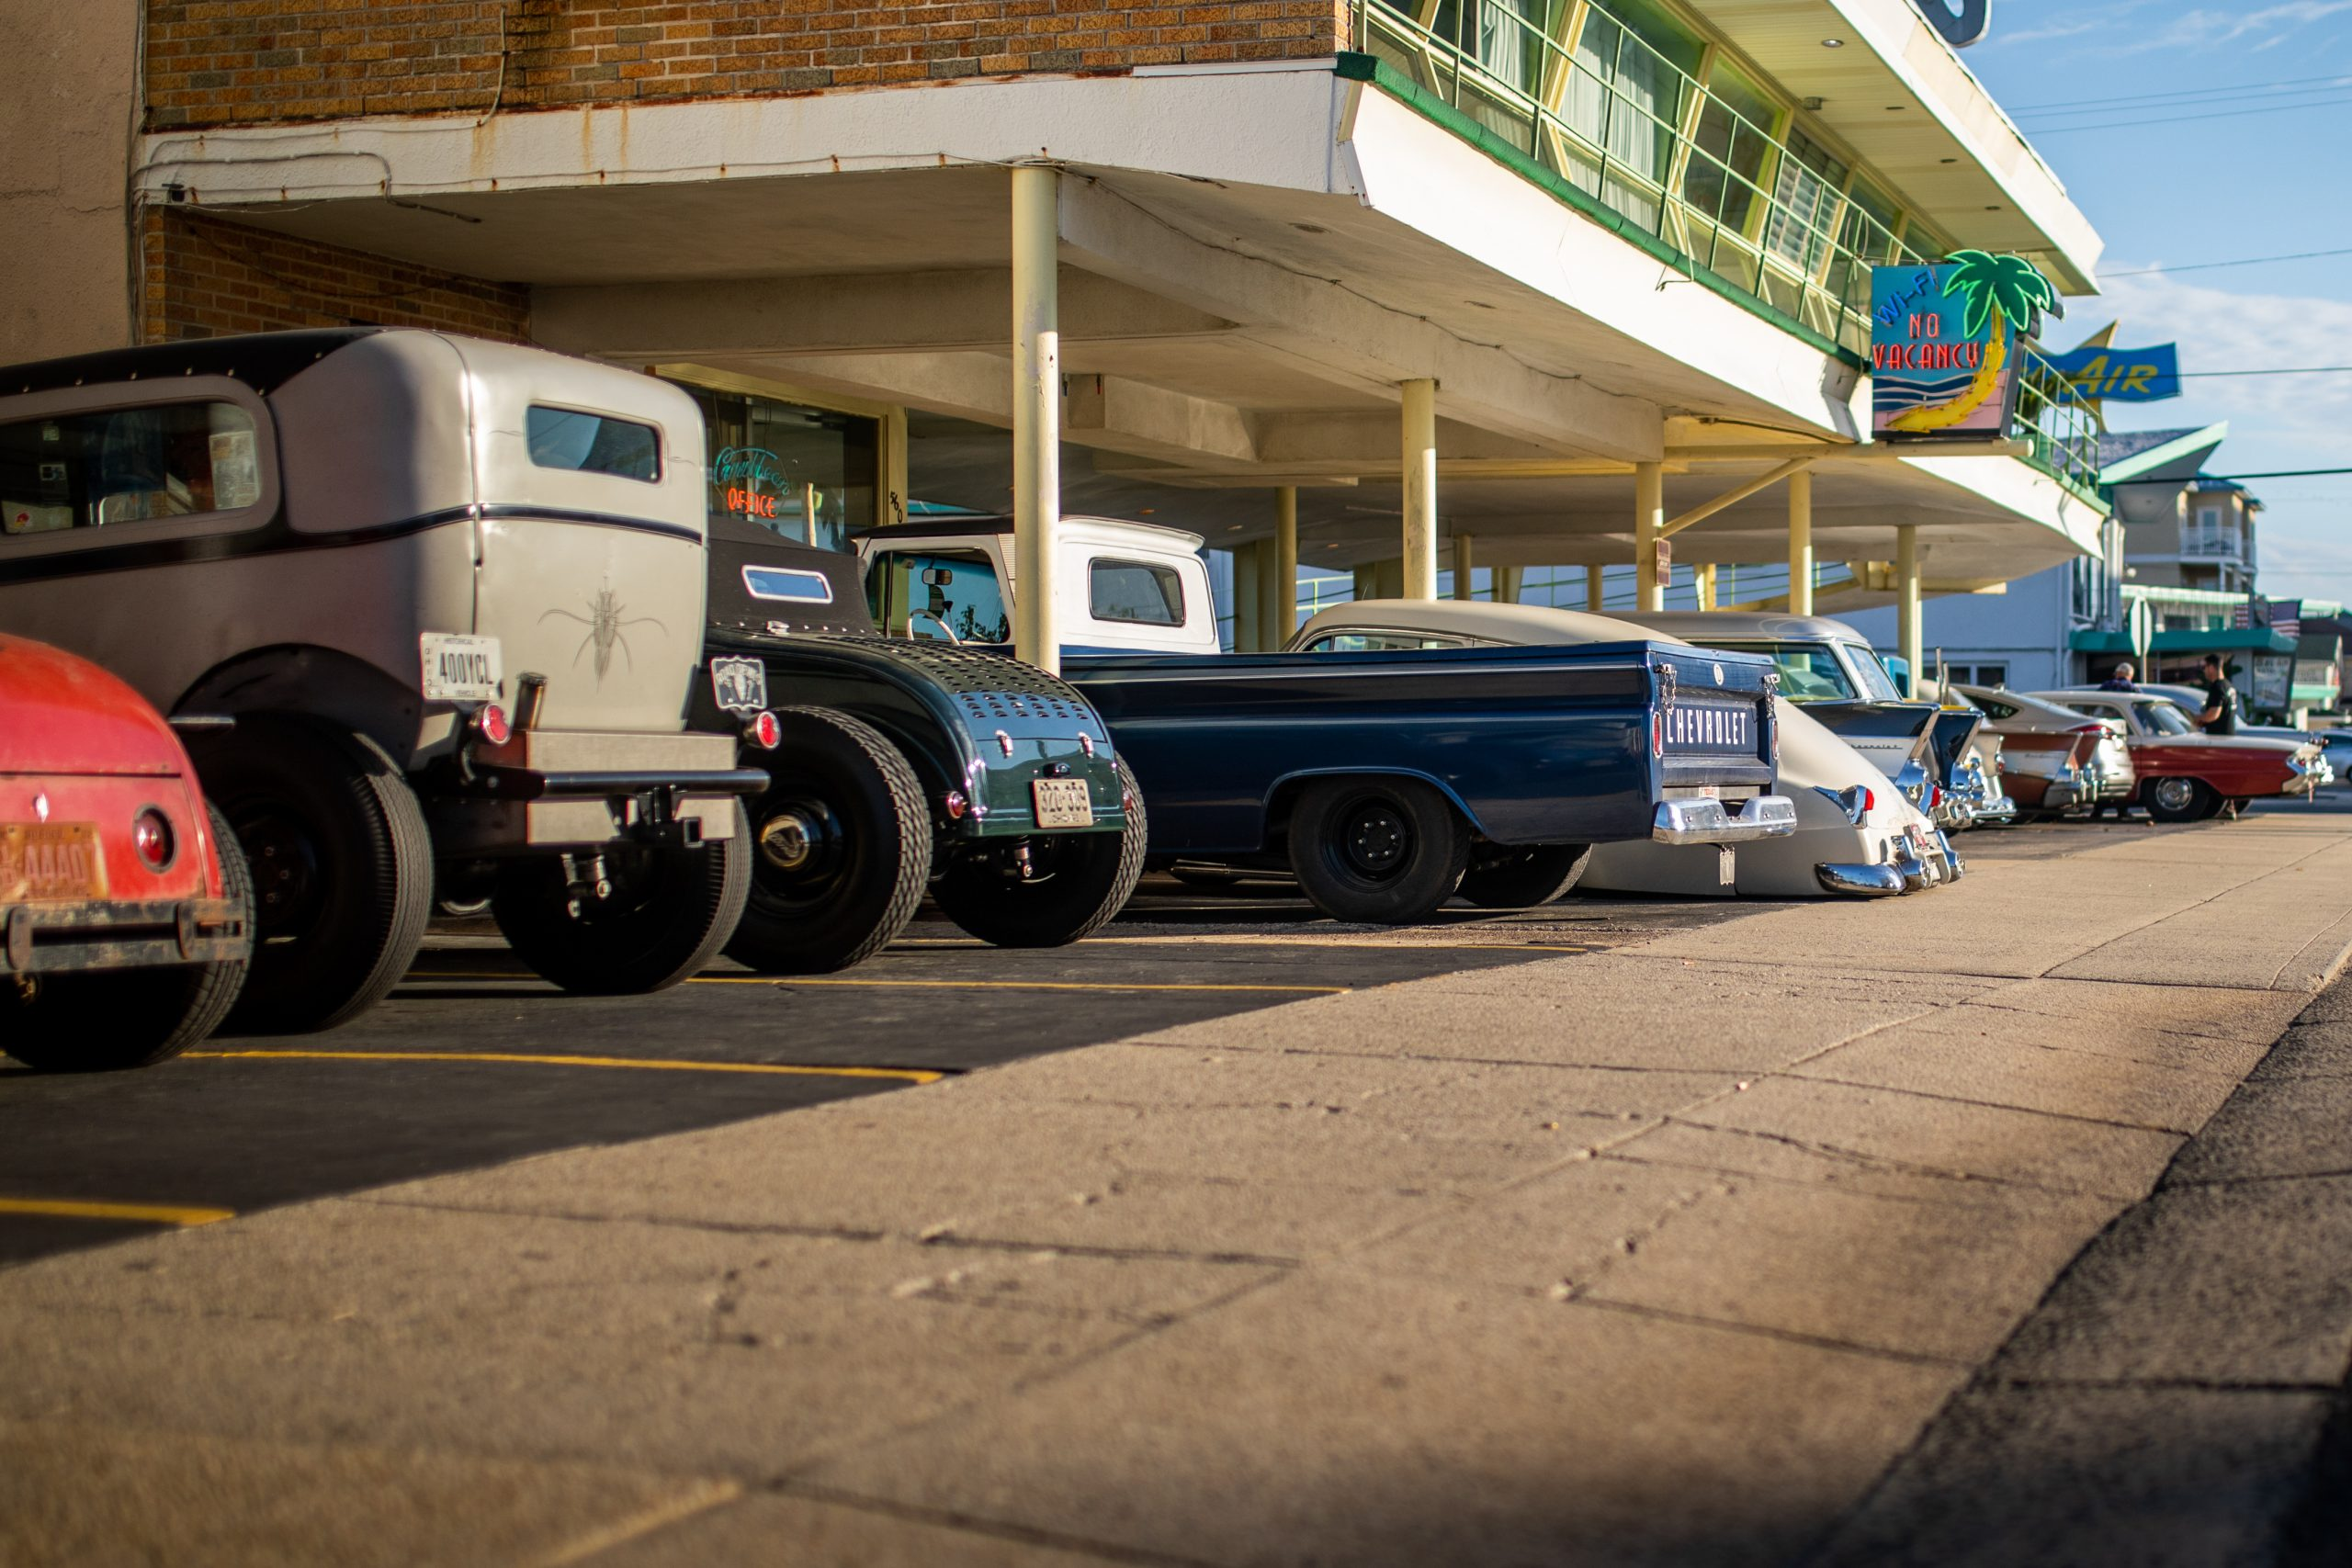 hot rods lined up under motel